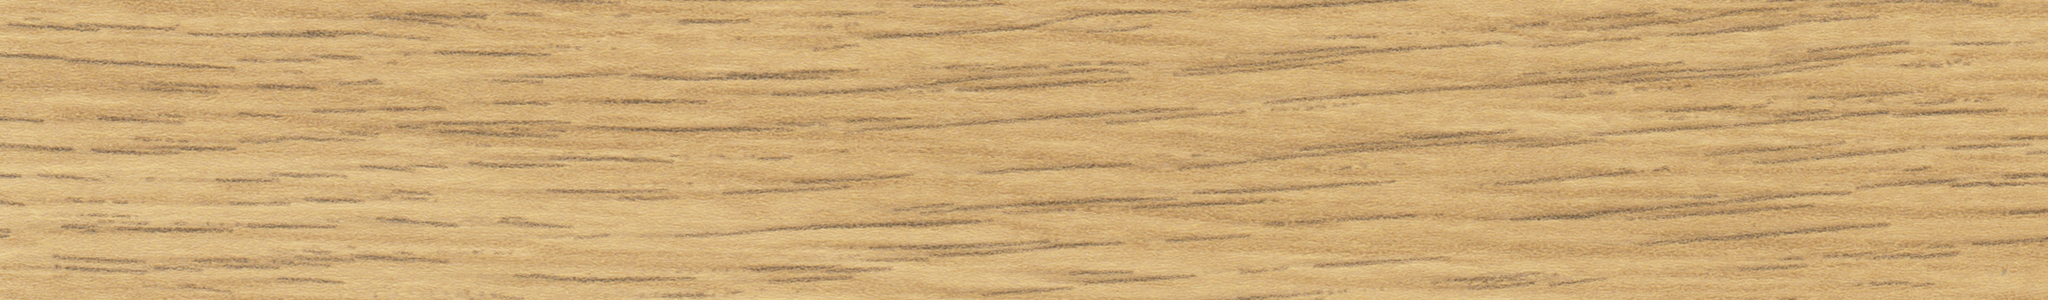 HD 64798 Melamine Edge FALZ Oak Smooth